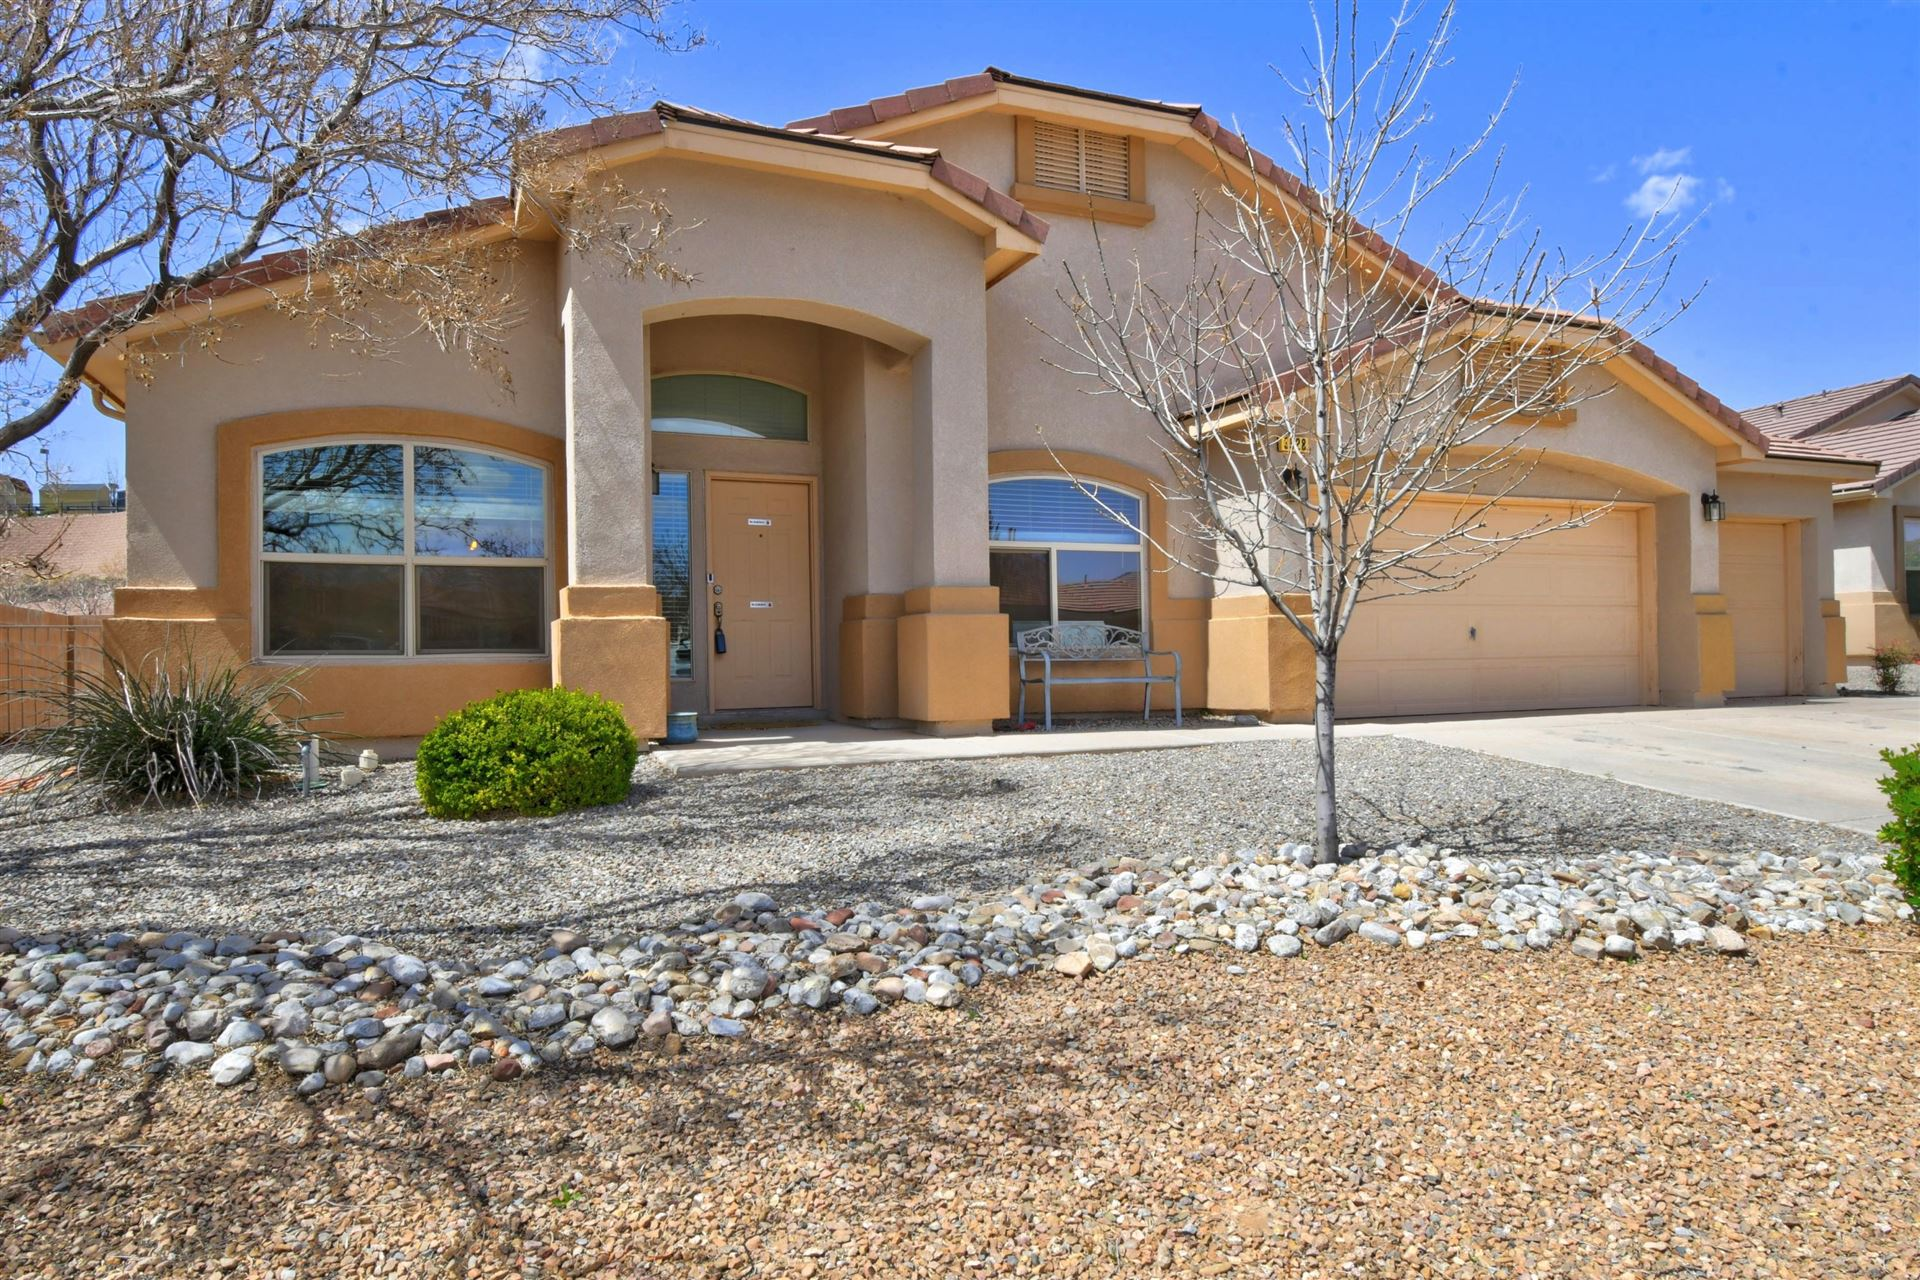 3928 CHOLLA Drive NE, Rio Rancho, NM 87144 - MLS#: 989098